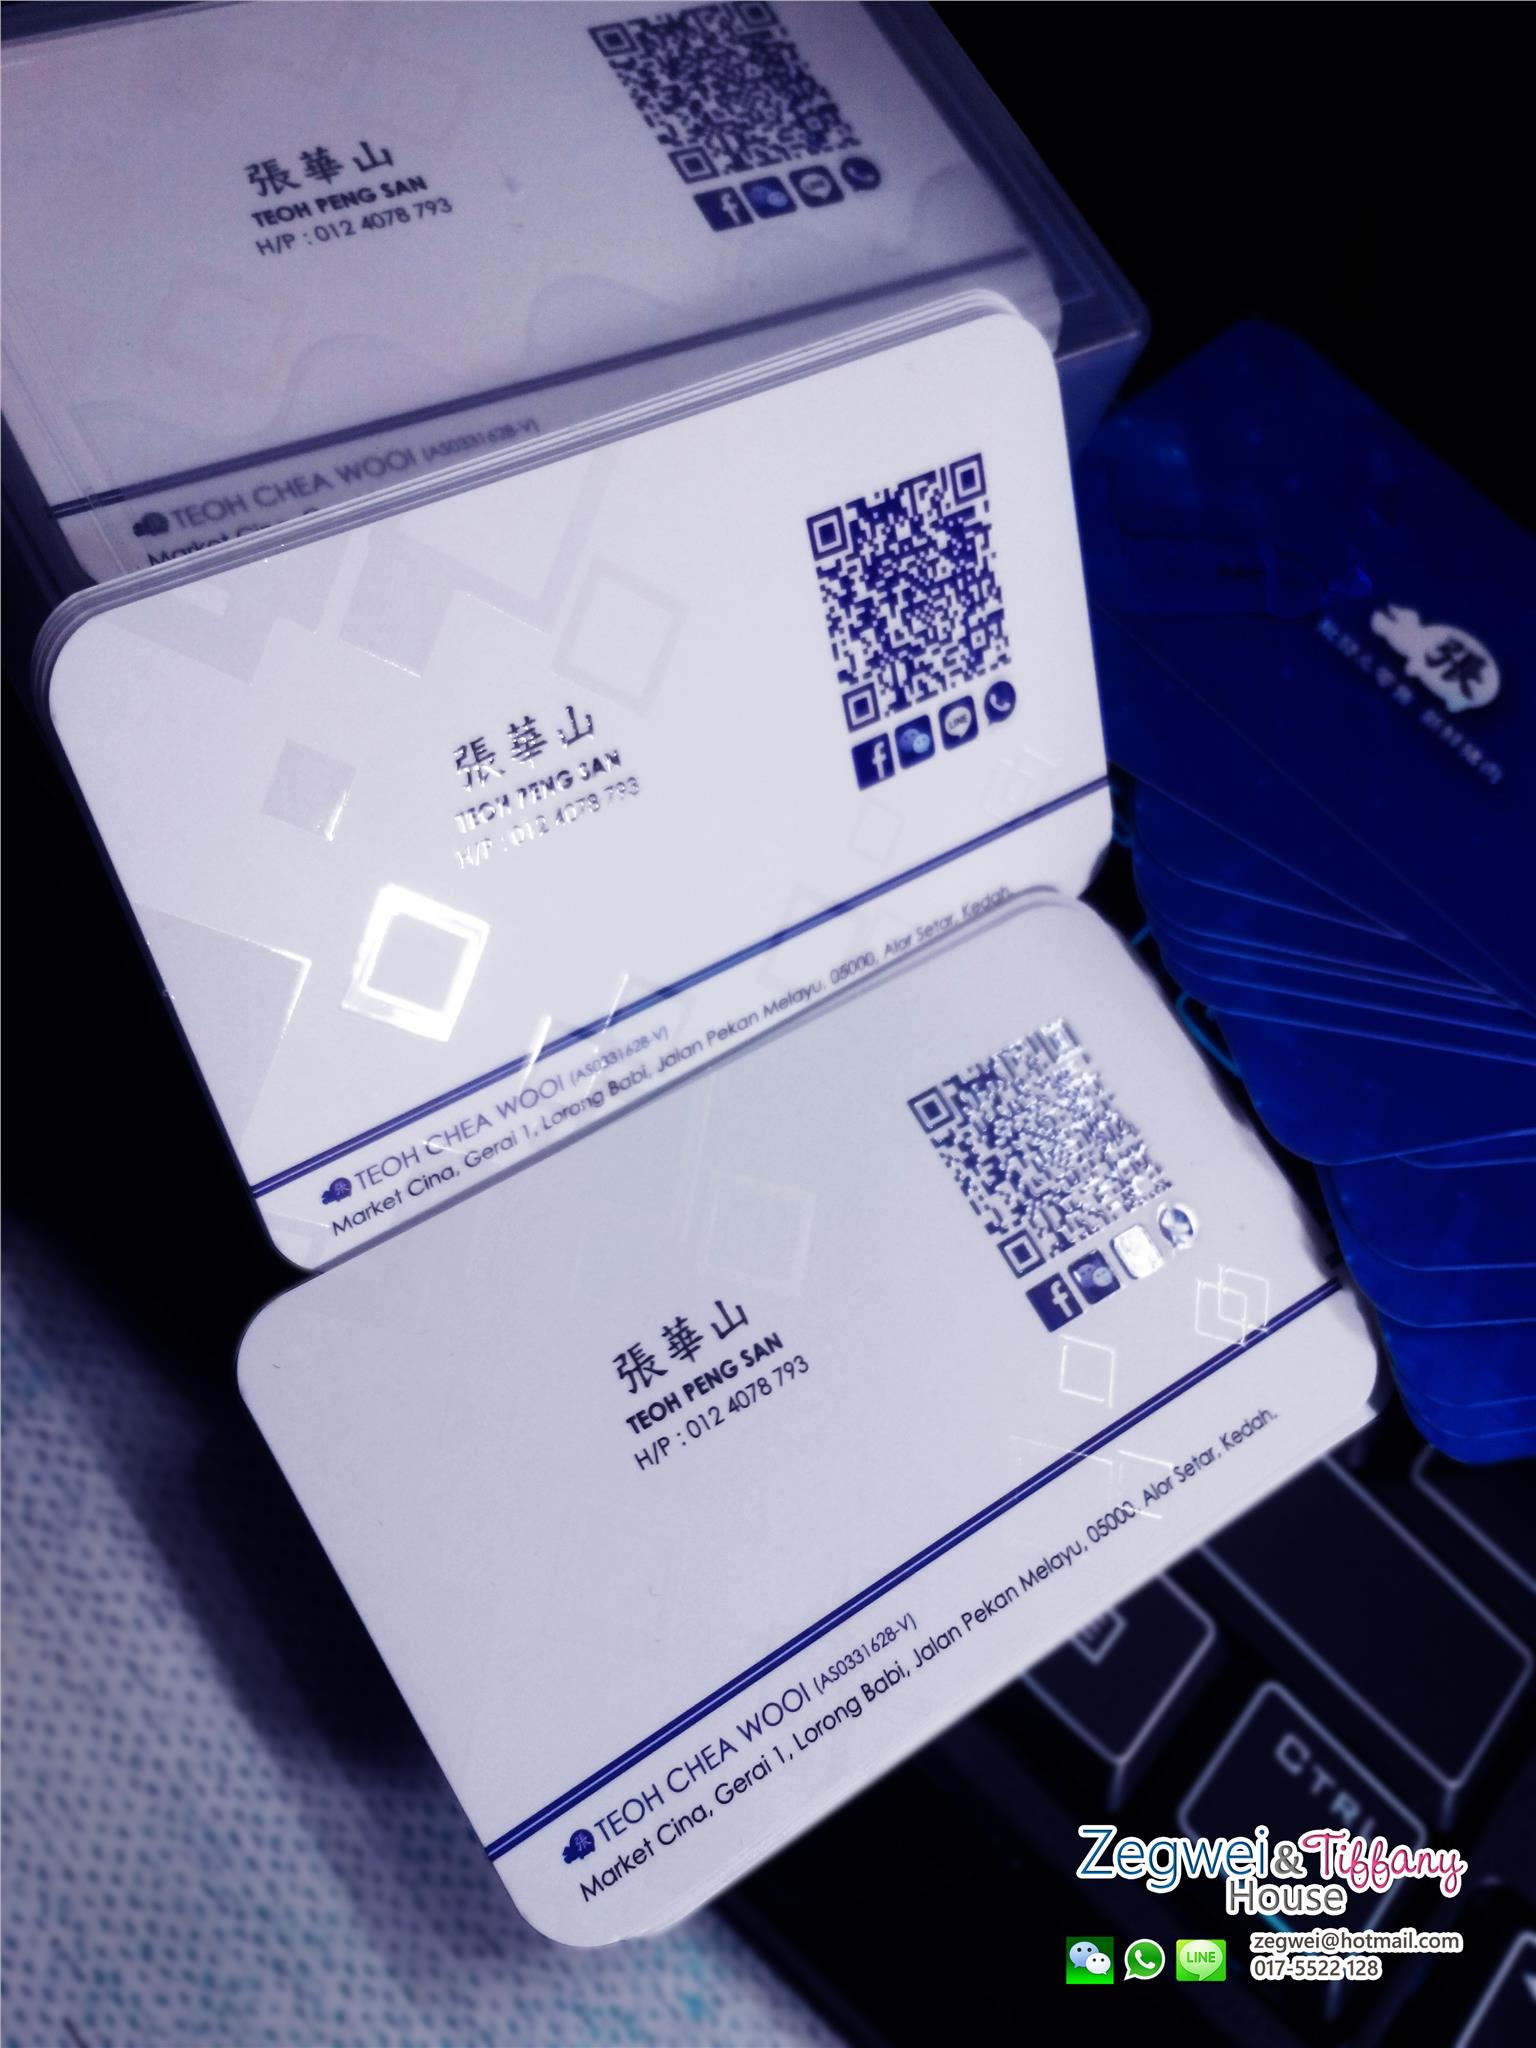 Business card printing online malaysia images card design and card fast business card printing malaysia image collections card design print business cards online malaysia gallery card reheart Image collections